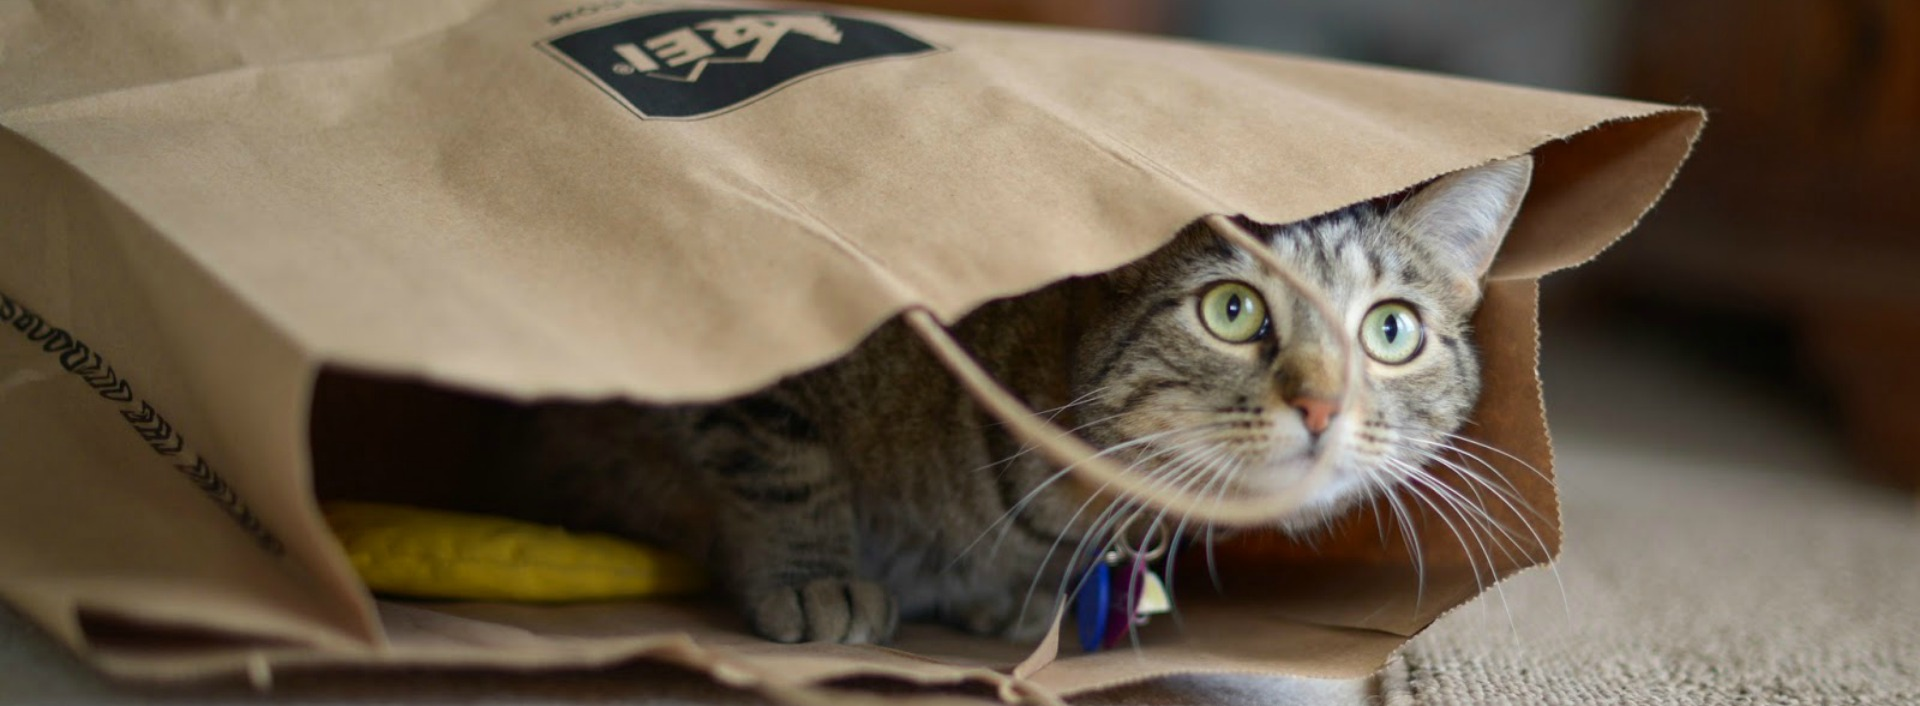 English idioms you should learn: A cat looks out of a paper bag